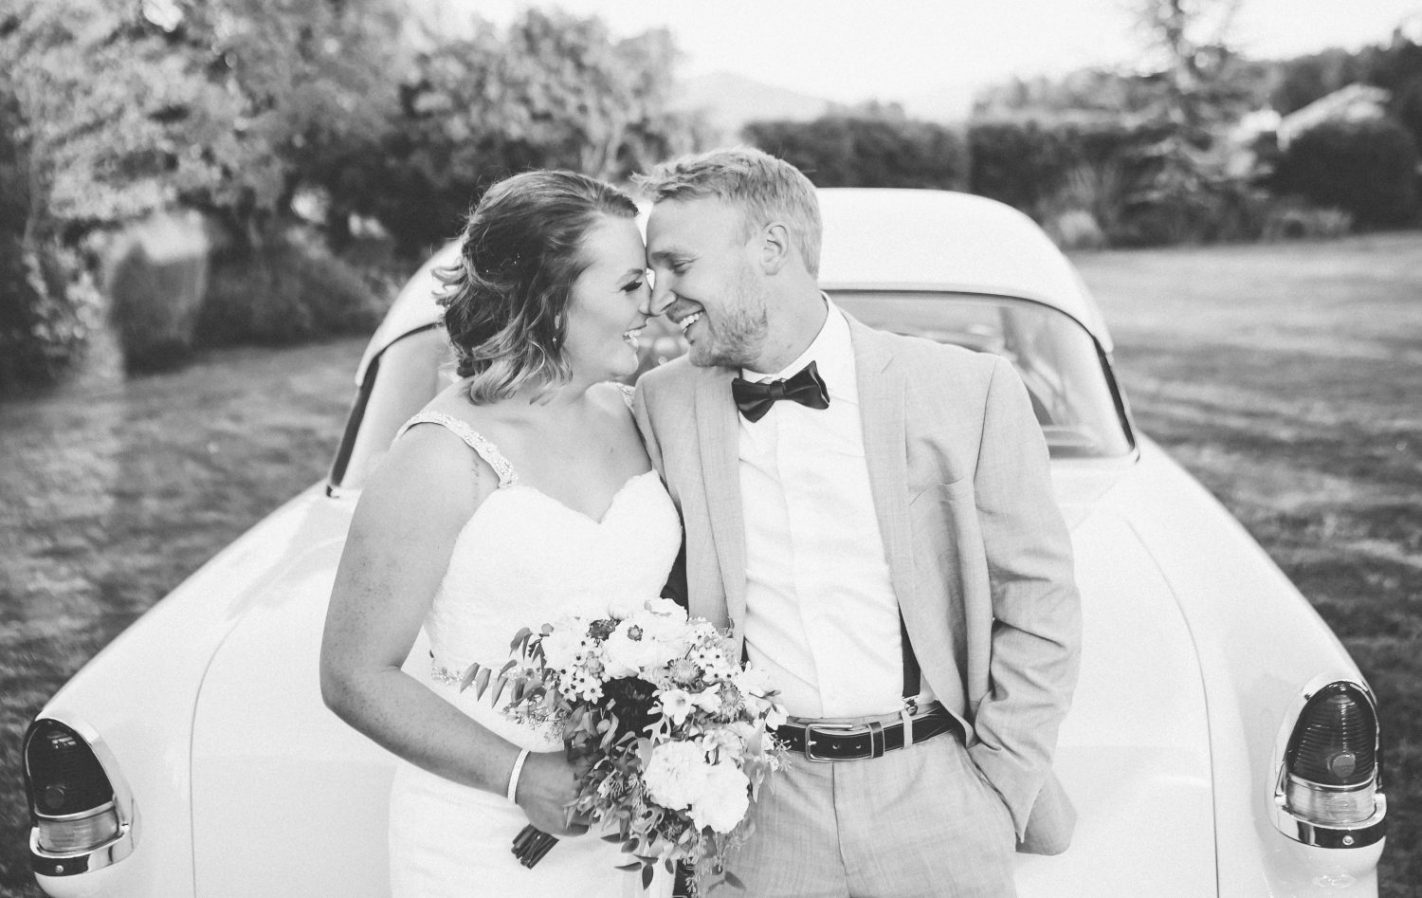 vintage-car-with-bride-groom-classic-black-white